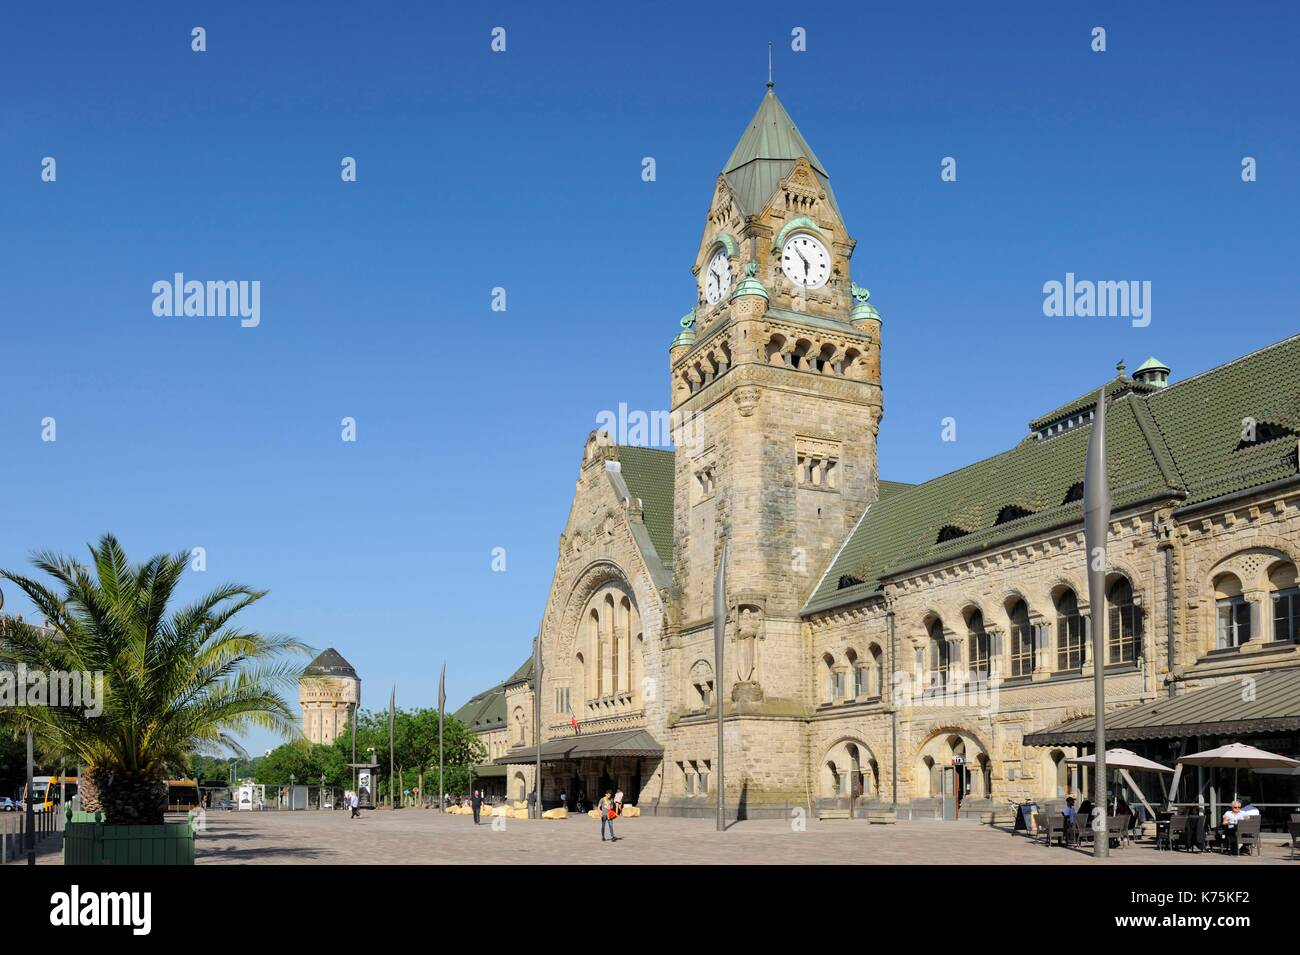 France, Moselle, Metz, railway Station of Metz-ville inaugurated in 1908 and elected in 2017 most beautiful railway station of France by Internet users following a competition organized on Facebook by Gares & Connexions, pedestrian plaza - Stock Image